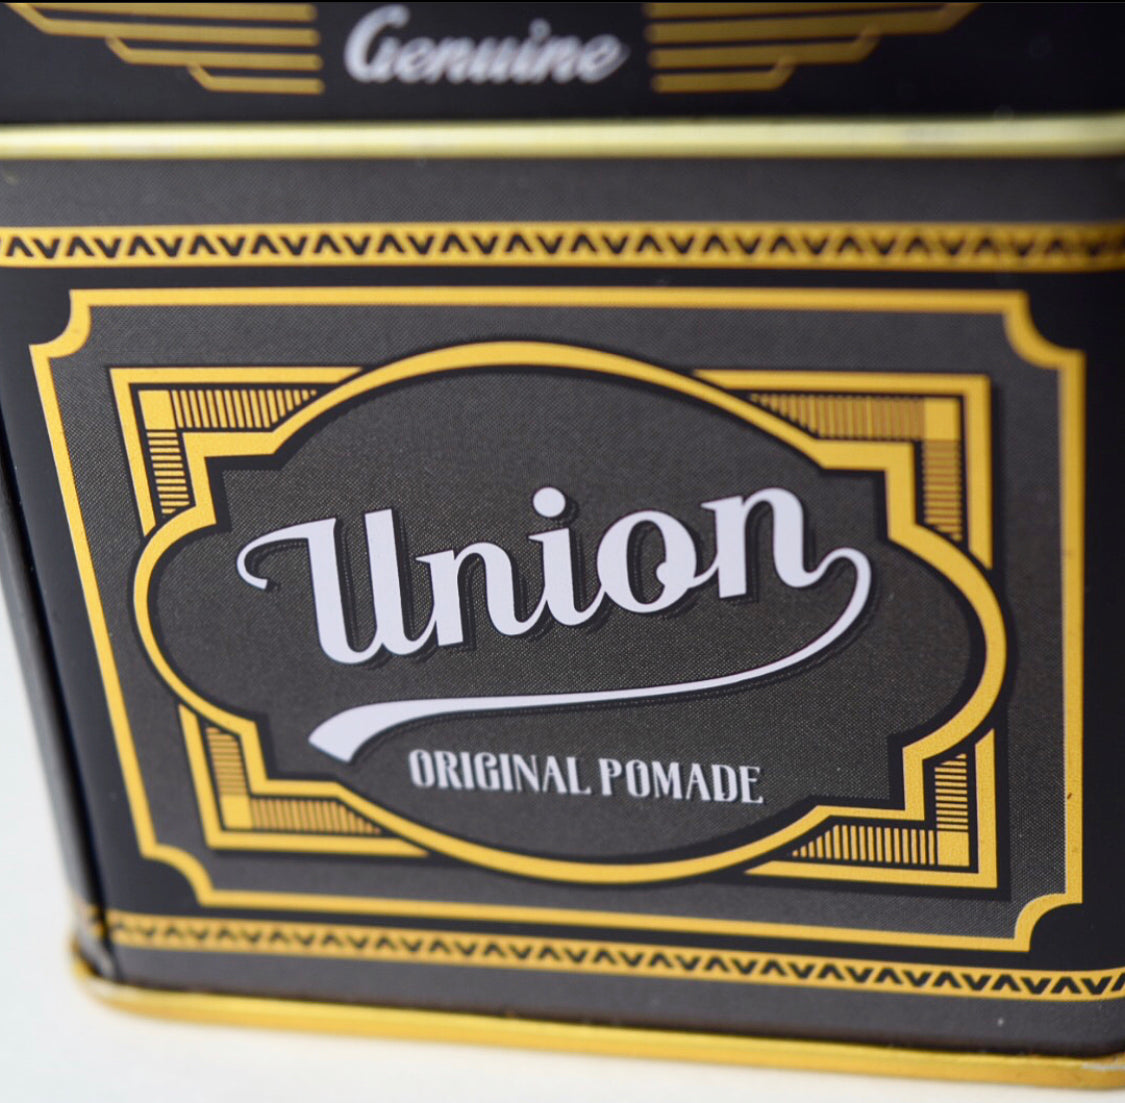 Union Original Pomade